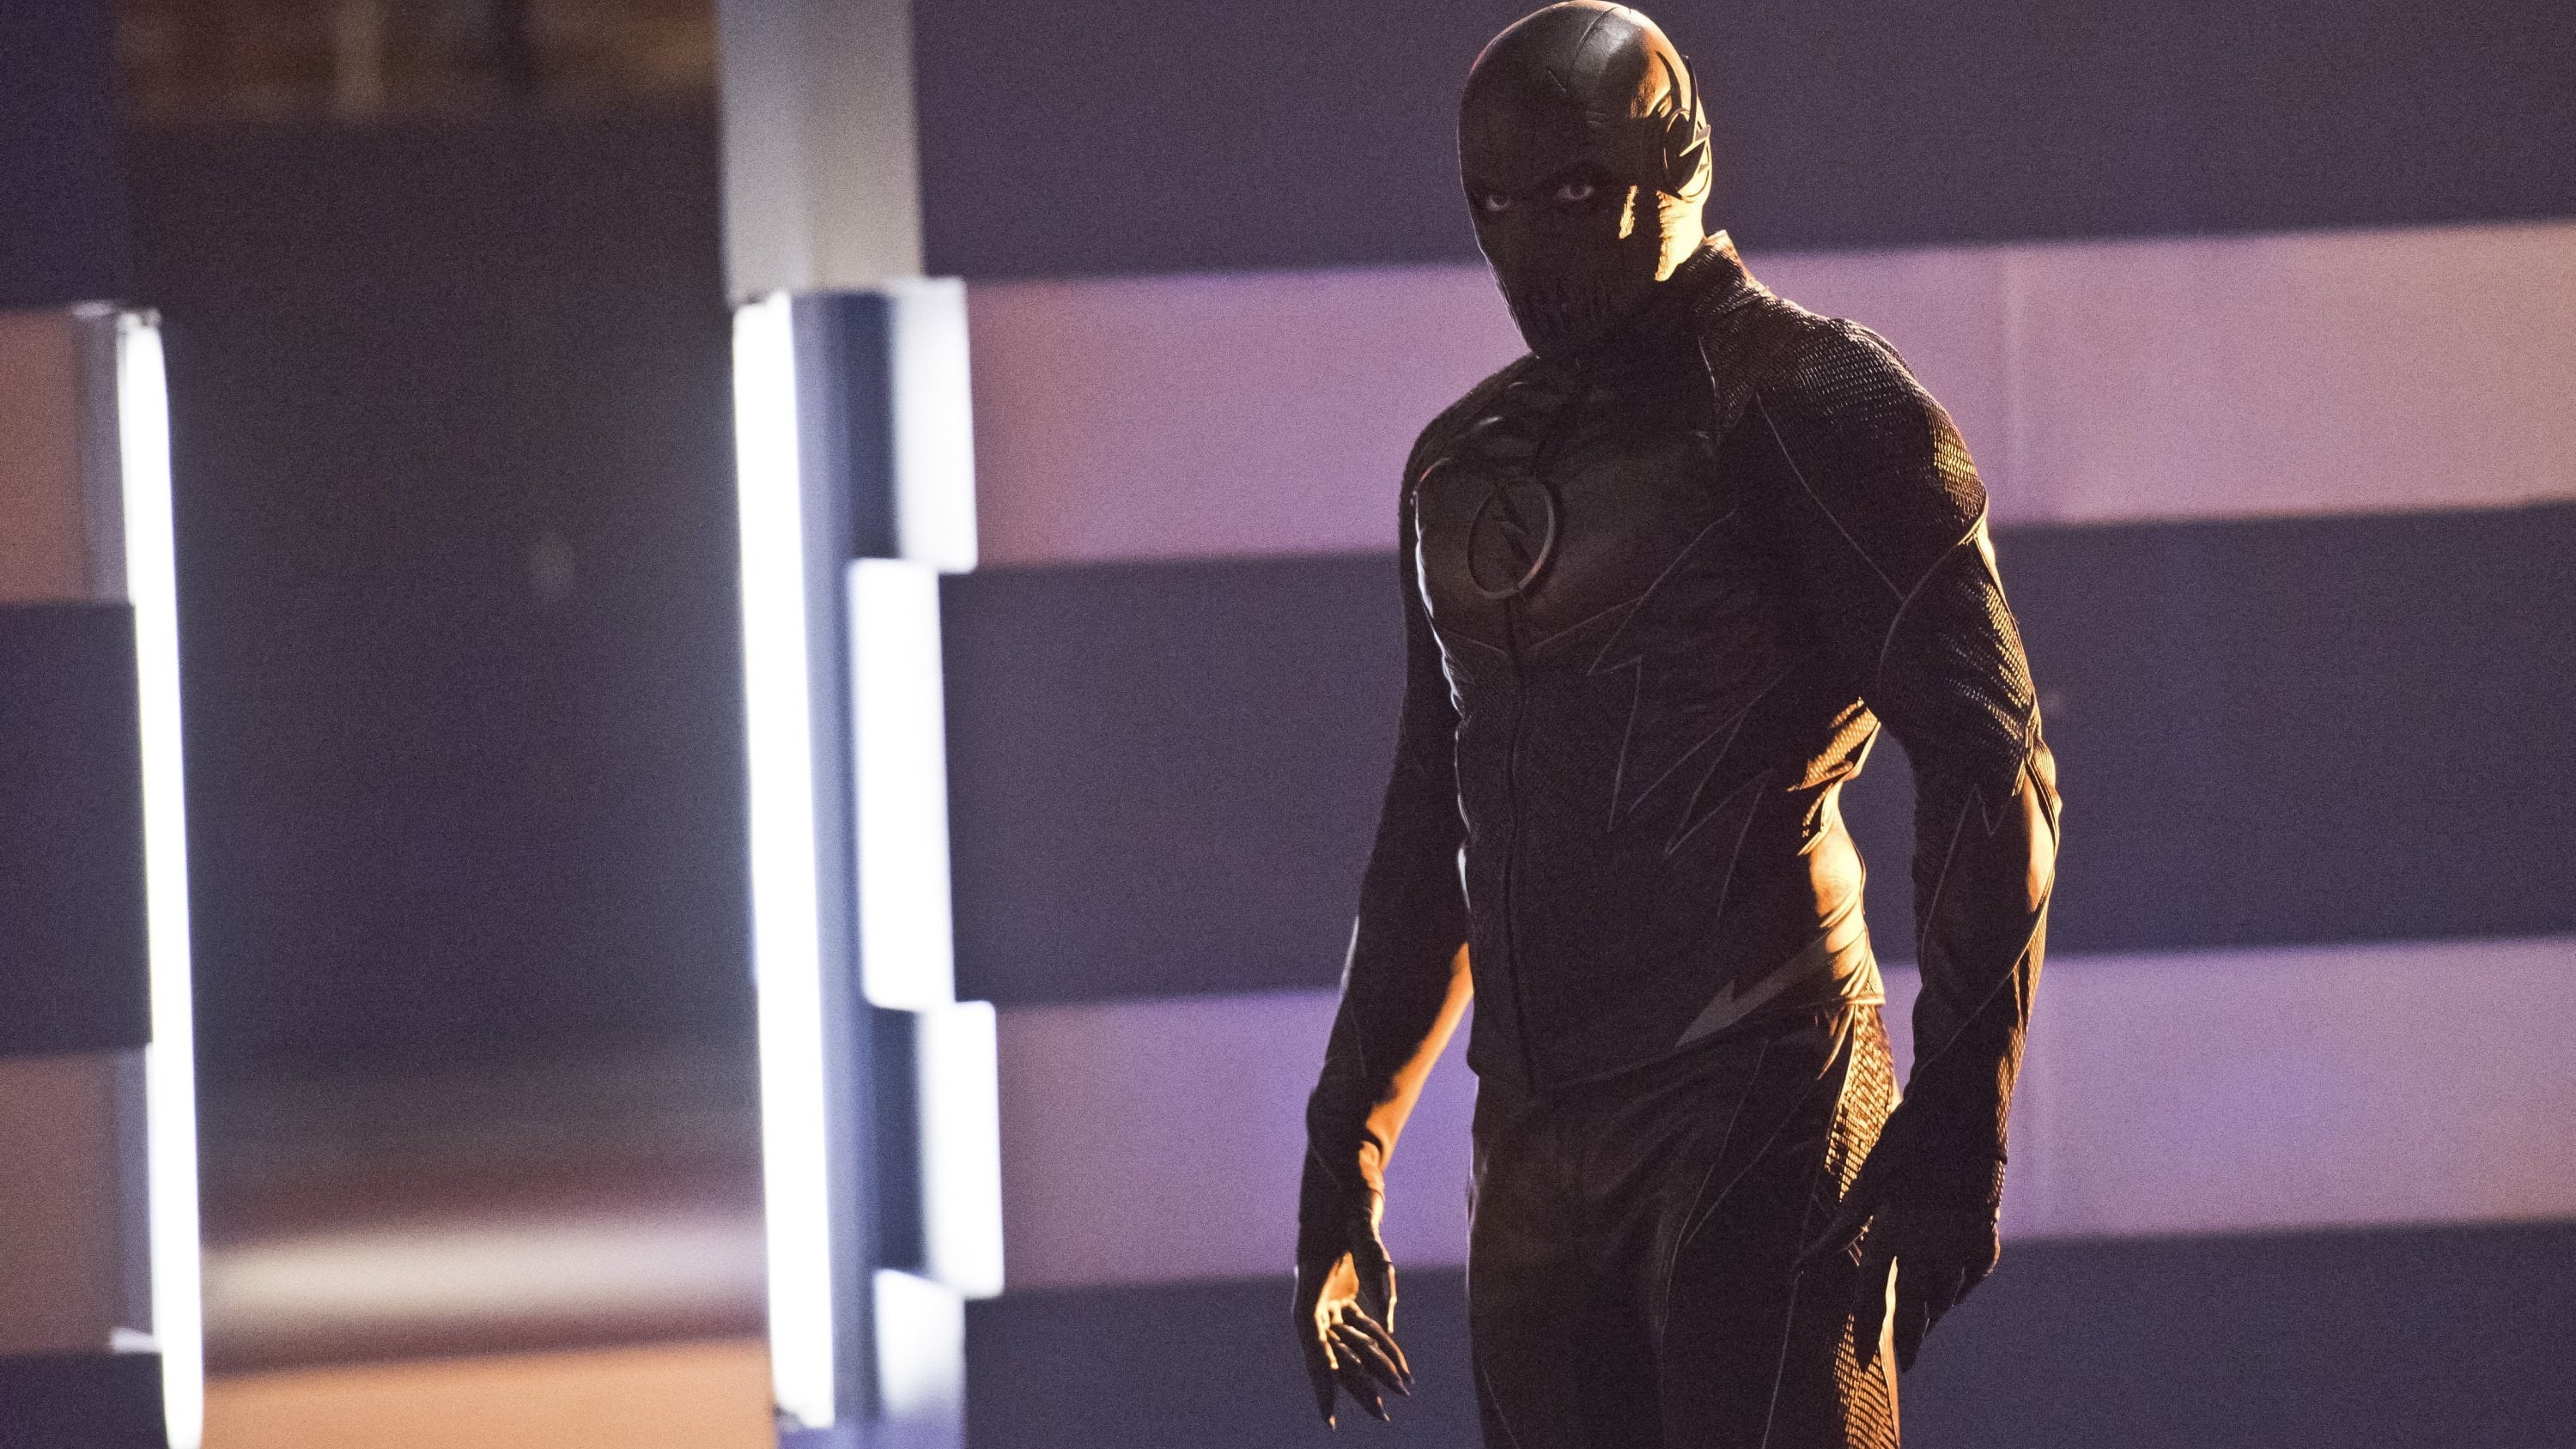 The Flash - Season 2 Episode 6 : Enter Zoom